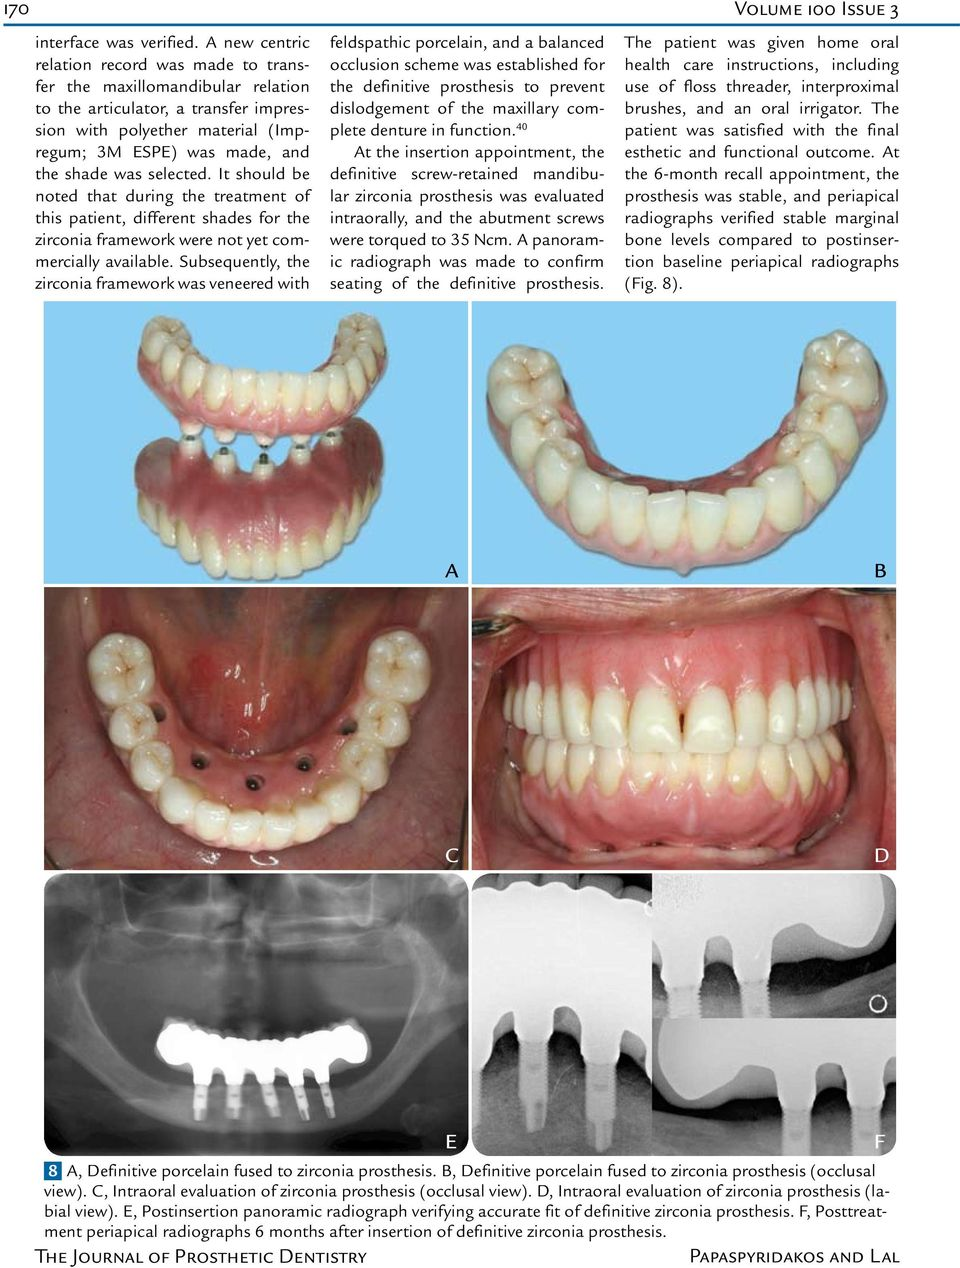 selected. It should be noted that during the treatment of this patient, different shades for the zirconia framework were not yet commercially available.